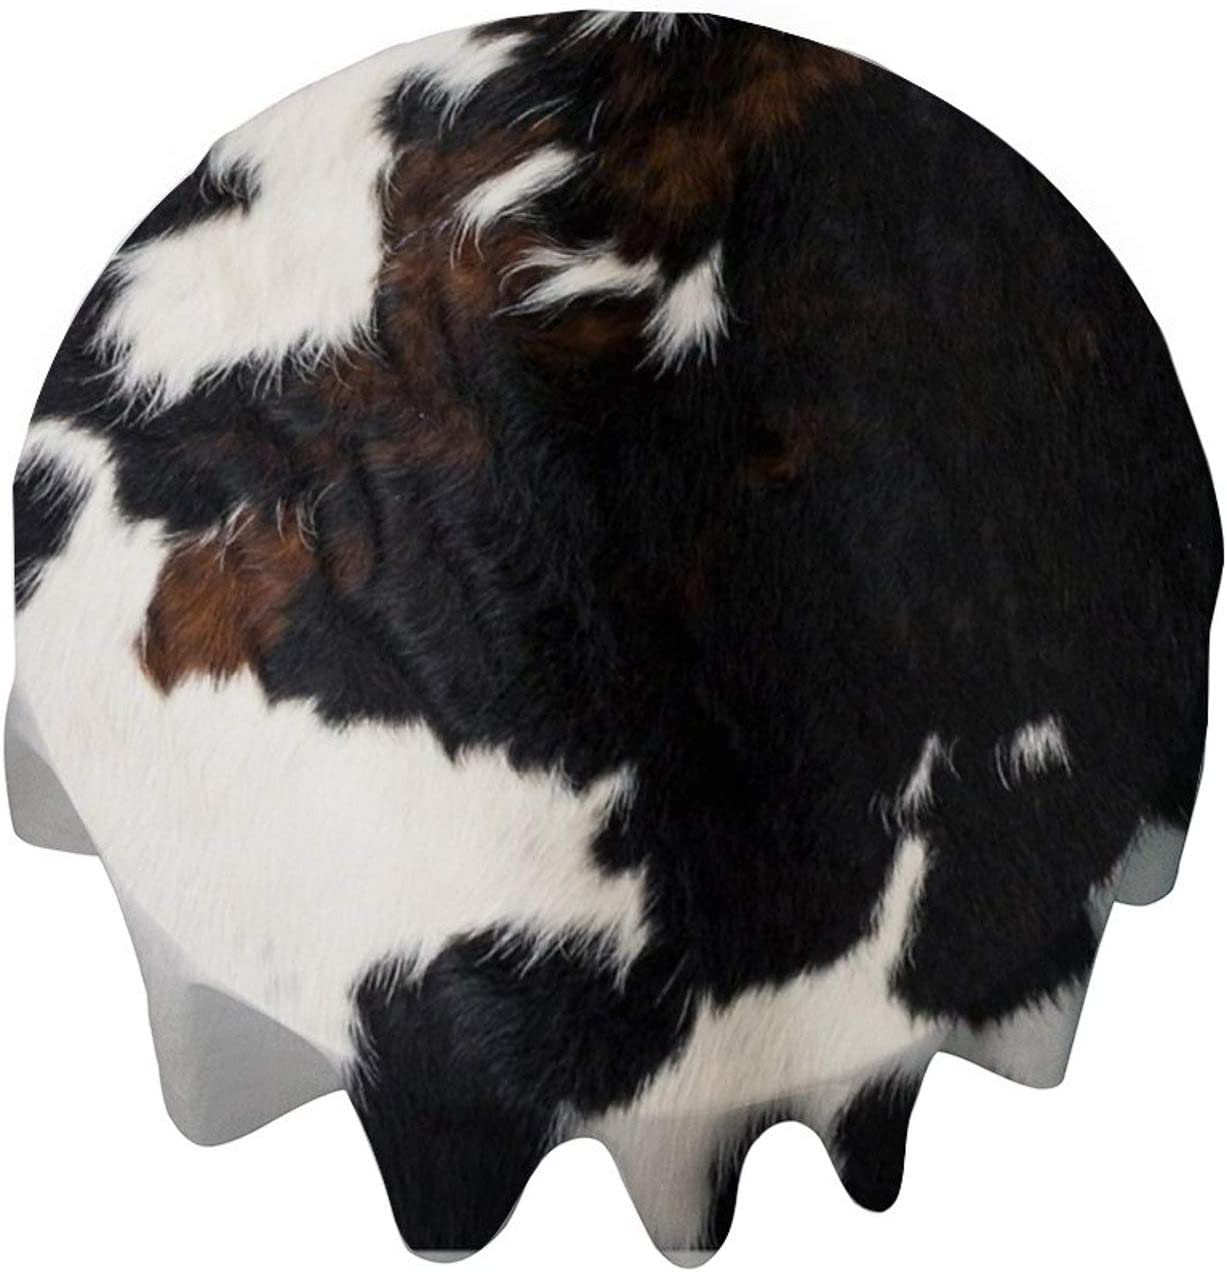 yyone Tablecloth Round 50 Inch Table Cover Cowhide Leather Table Cloth Decor for Buffet Table, Parties, Holiday Dinner, Wedding & More